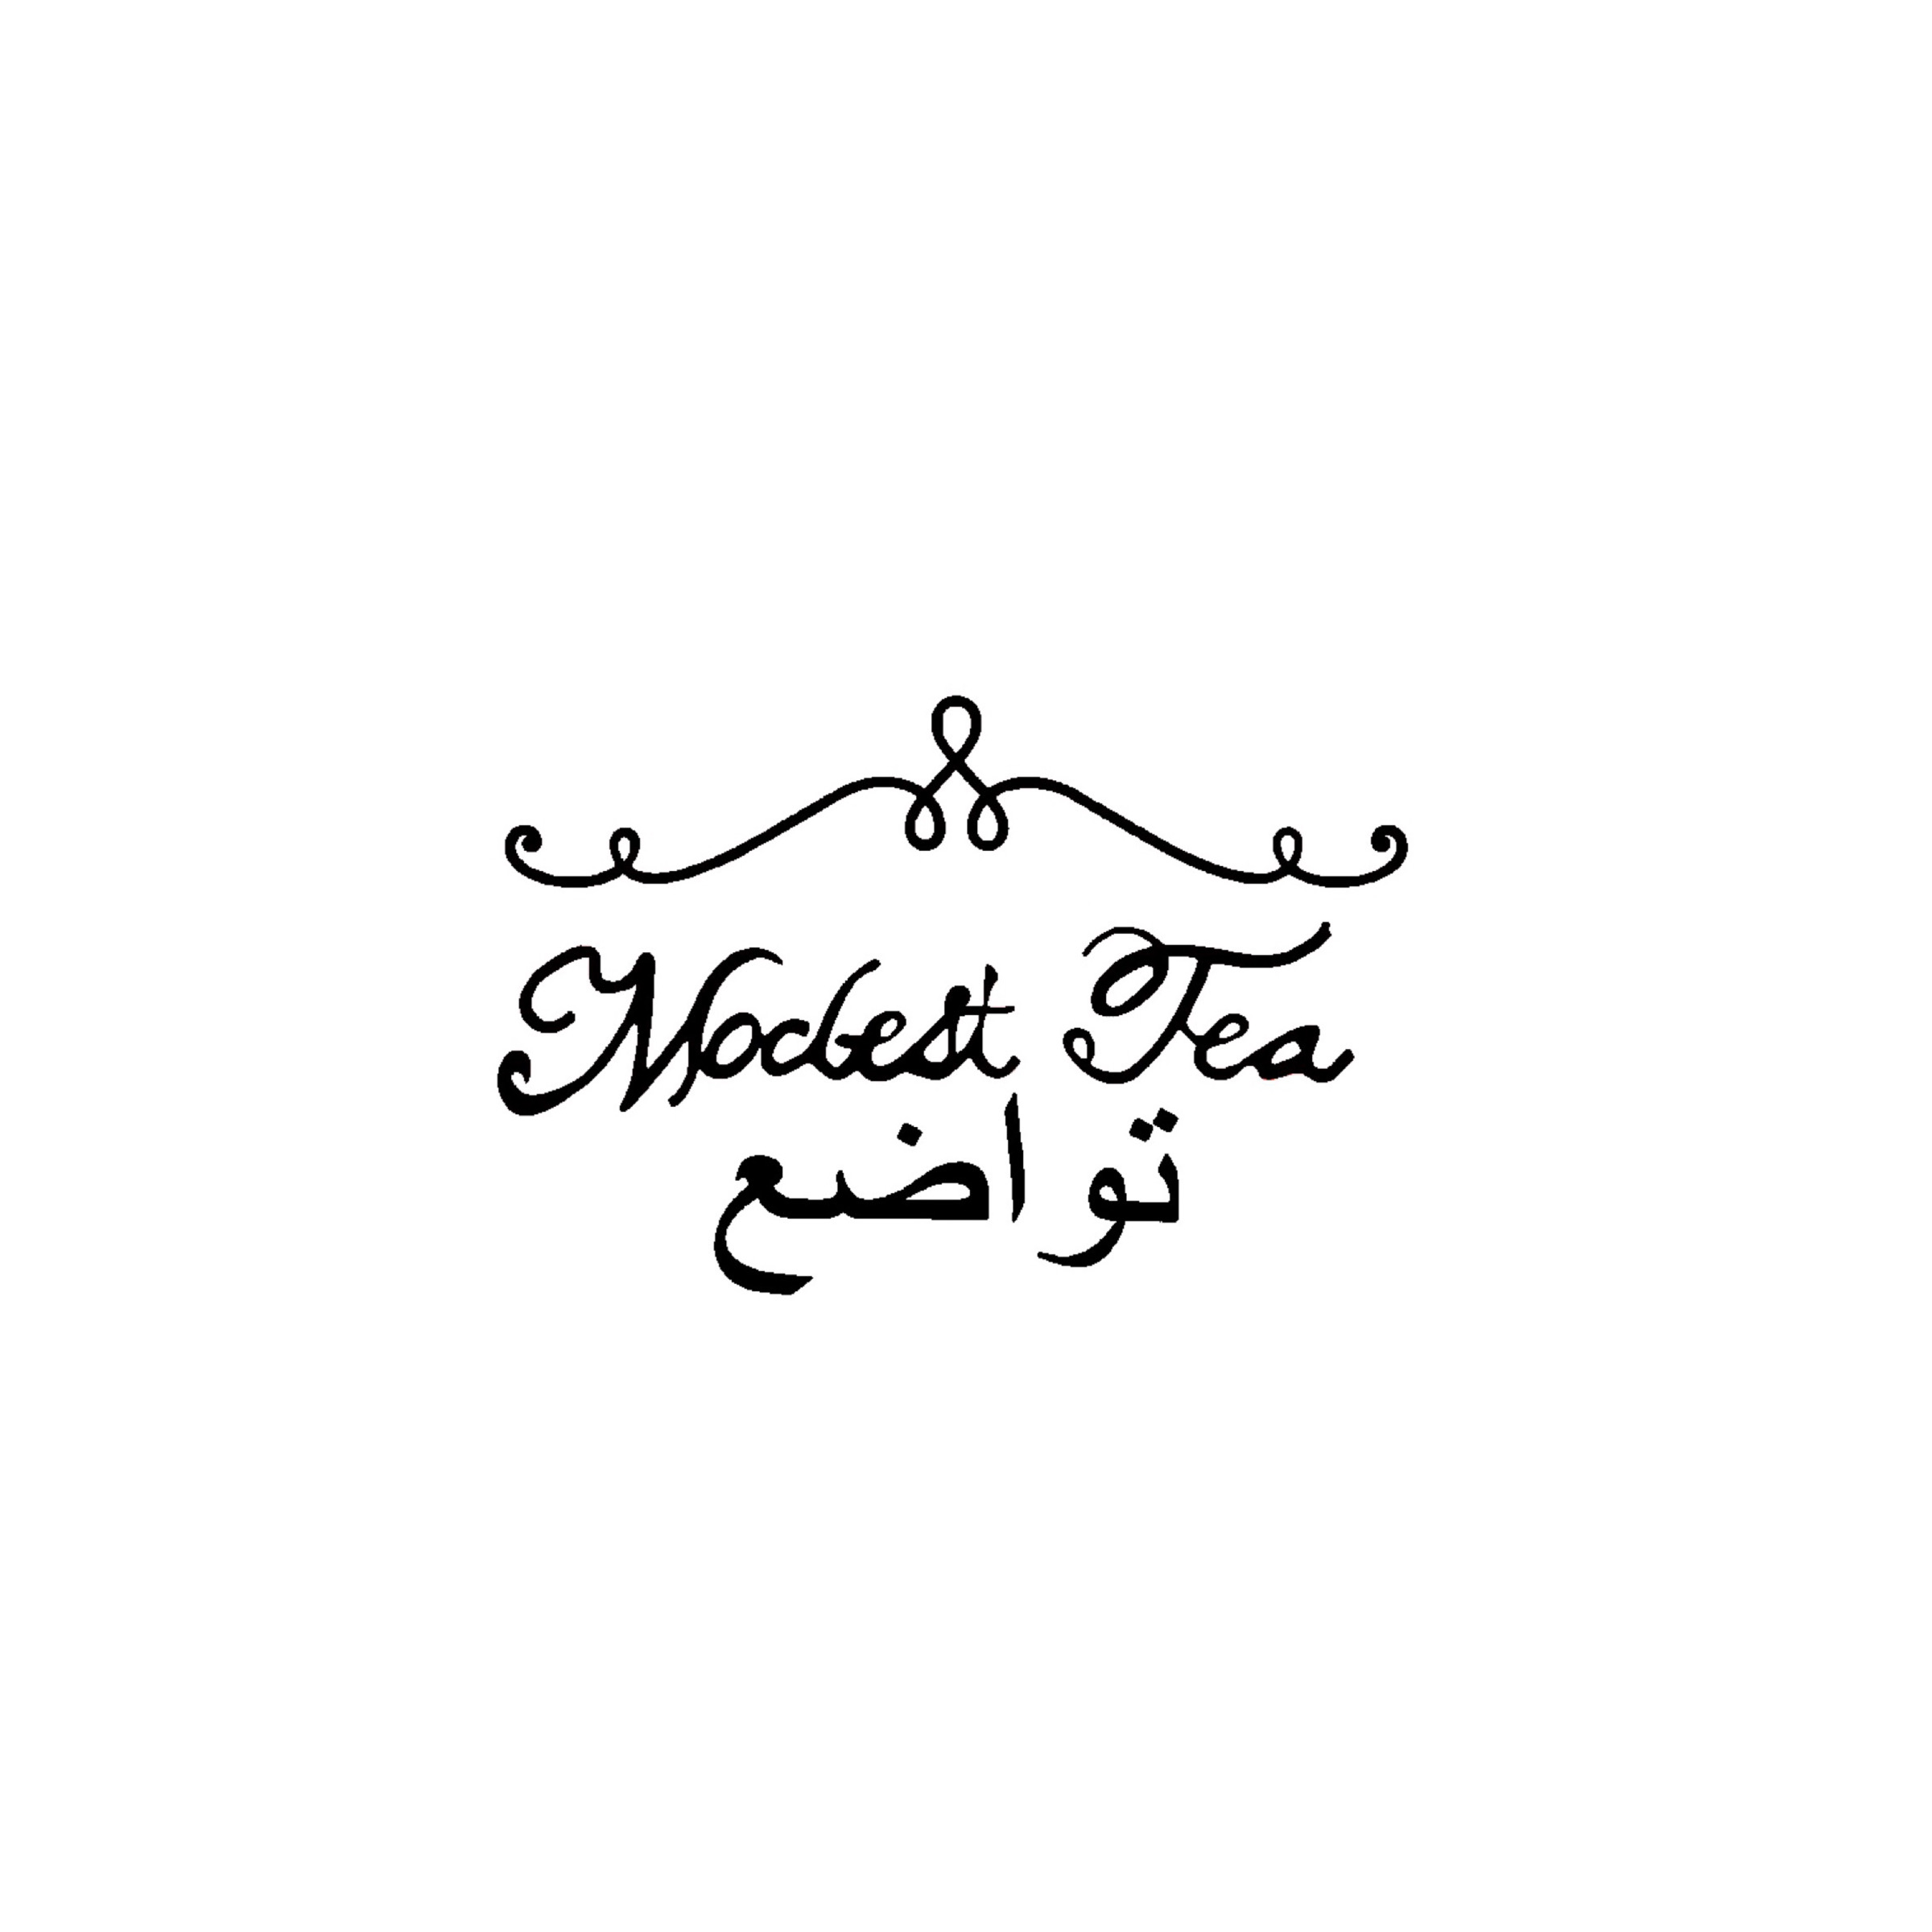 Modest Tea Boutique